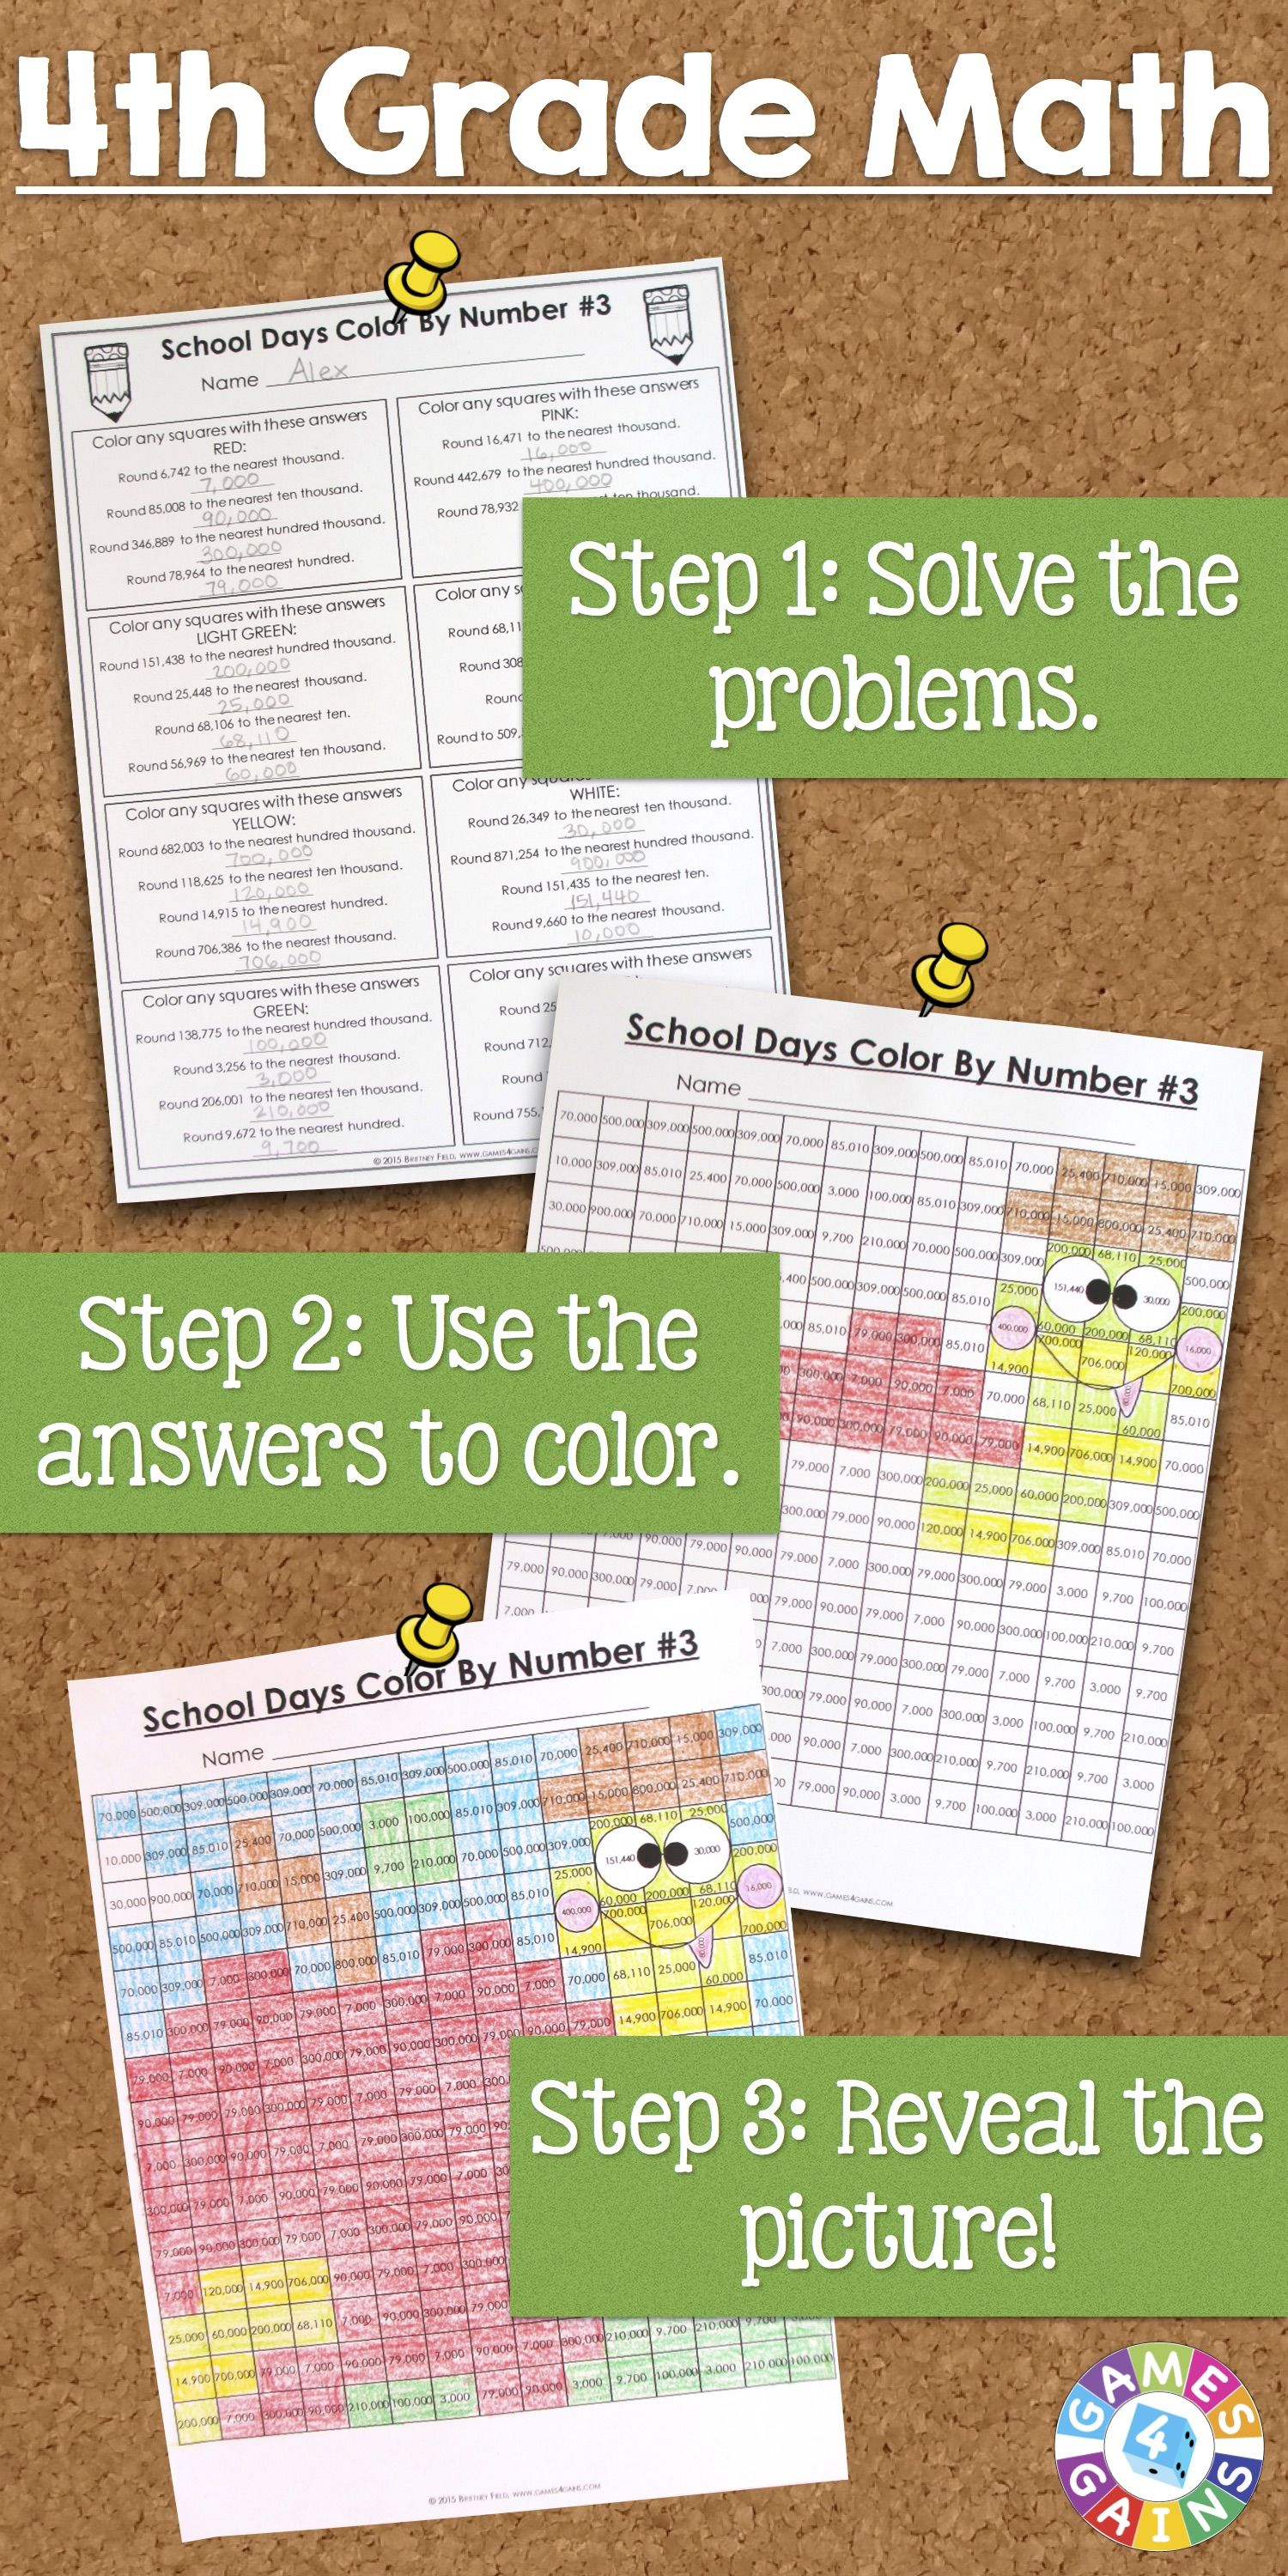 small resolution of 4th Grade Place Value Worksheets (5th Grade Back to School Math Review)   4th  grade math